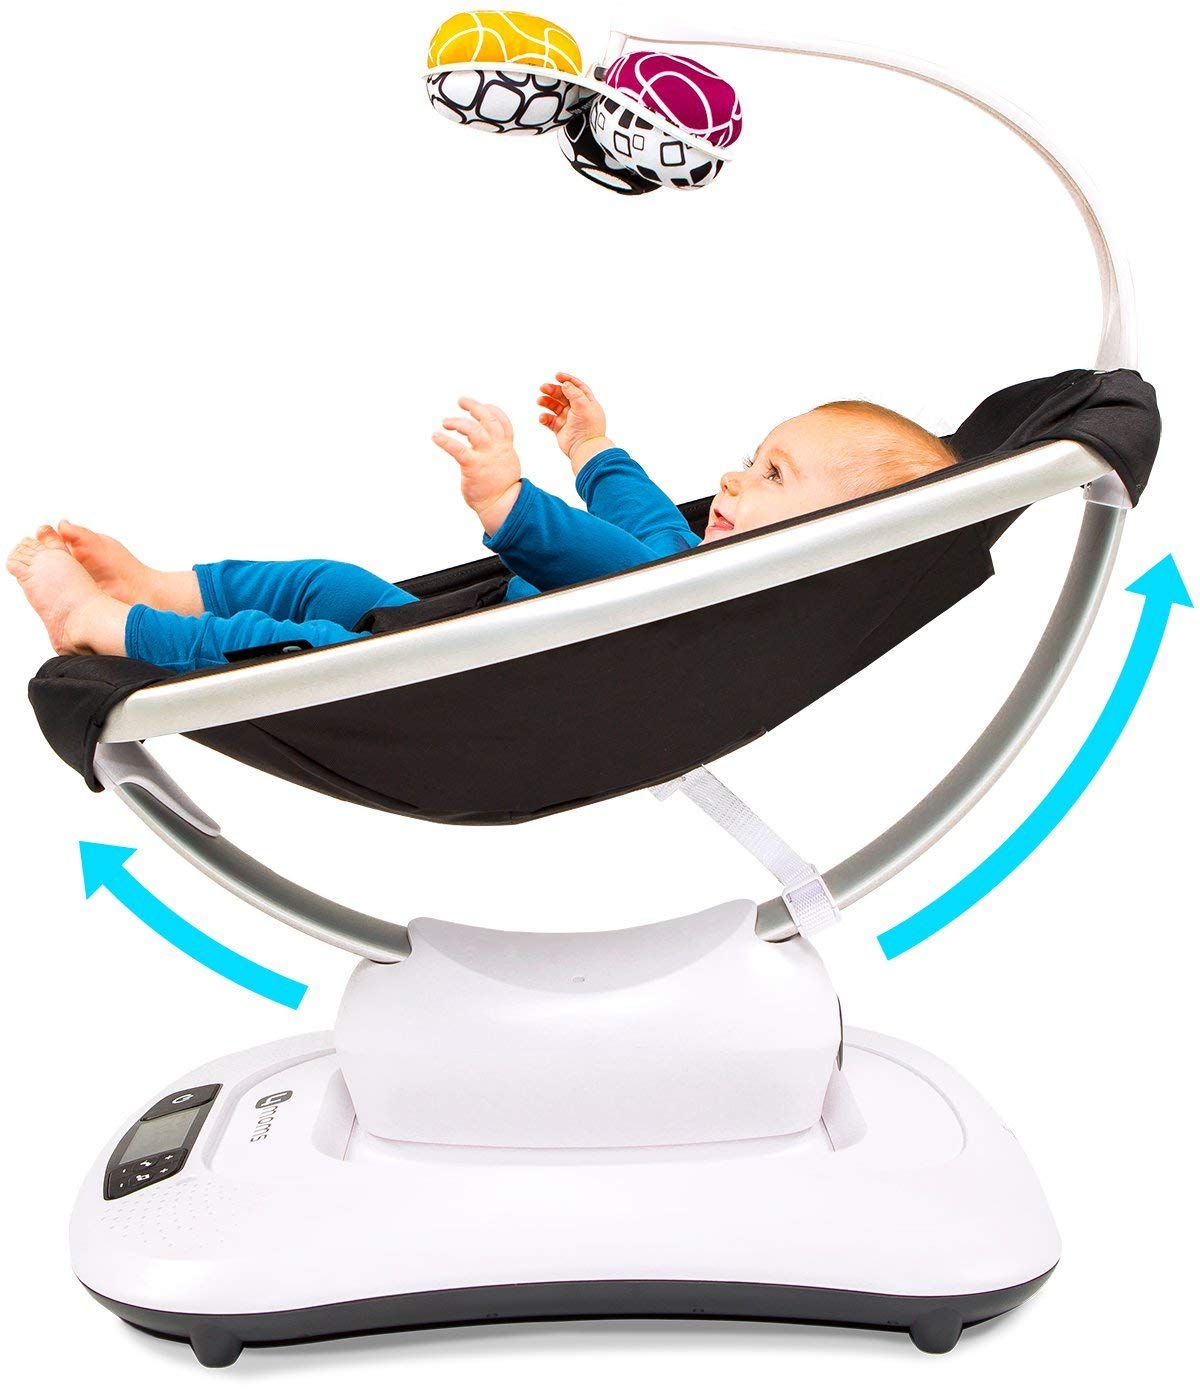 Cool smart sleepers to help parents get more sleep: 4moms mamaRoo | Amazon